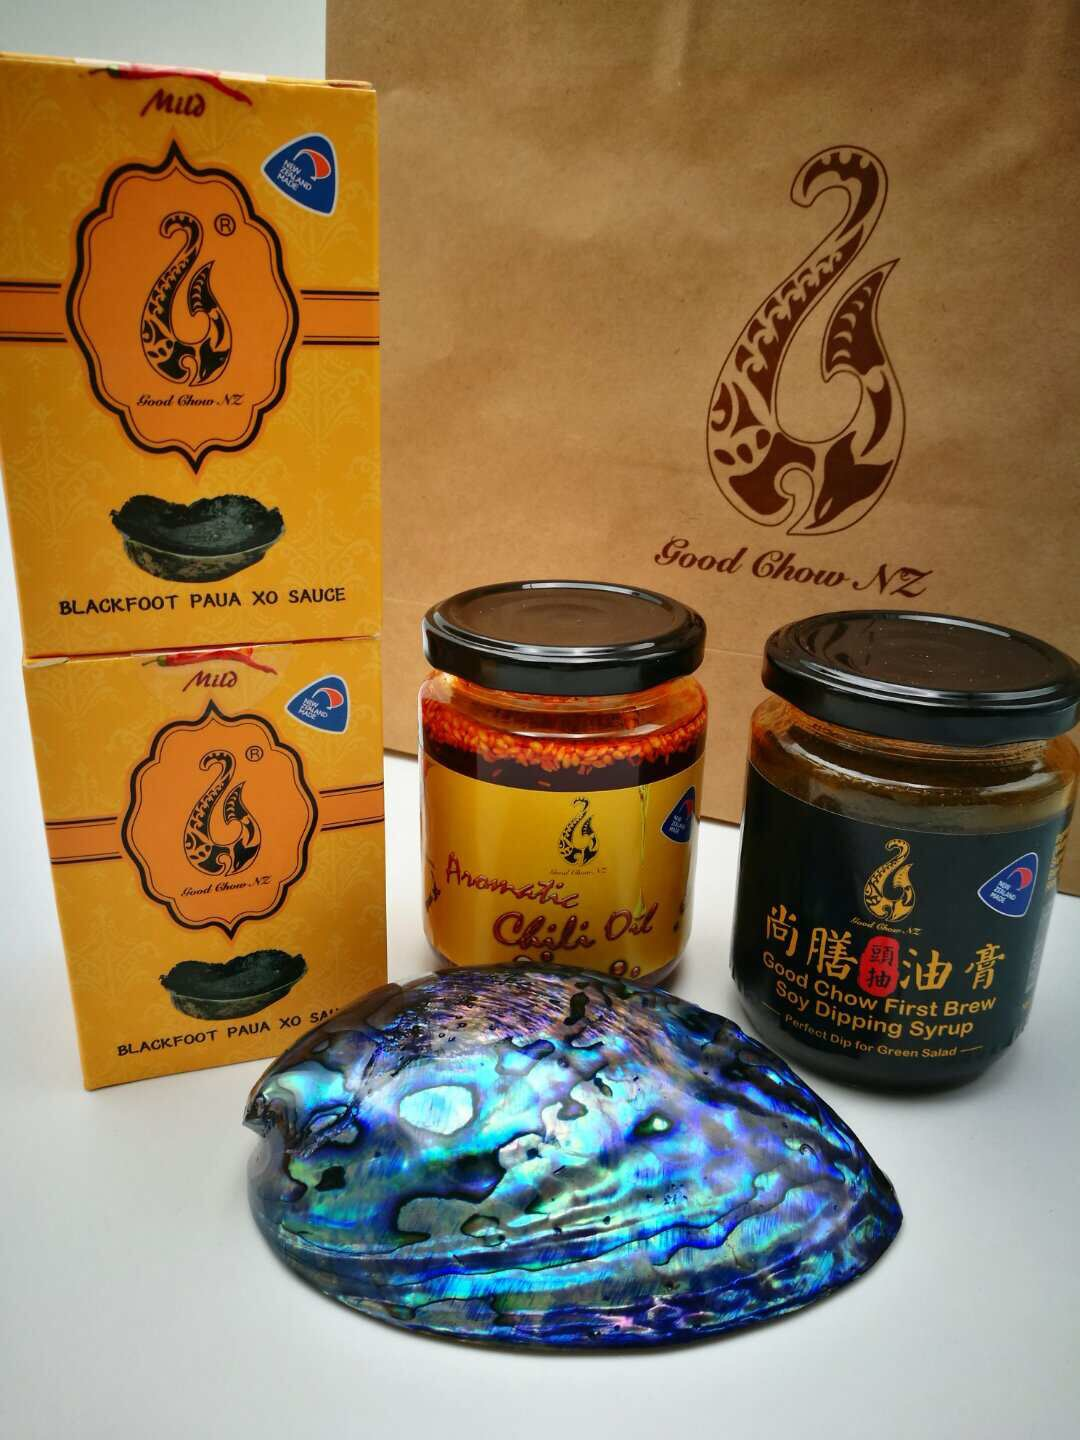 Paua Xo Sauce100ml*2,Aromatic Chilli Oil*1,Soy Dipping Syrup*1, Paua Shell